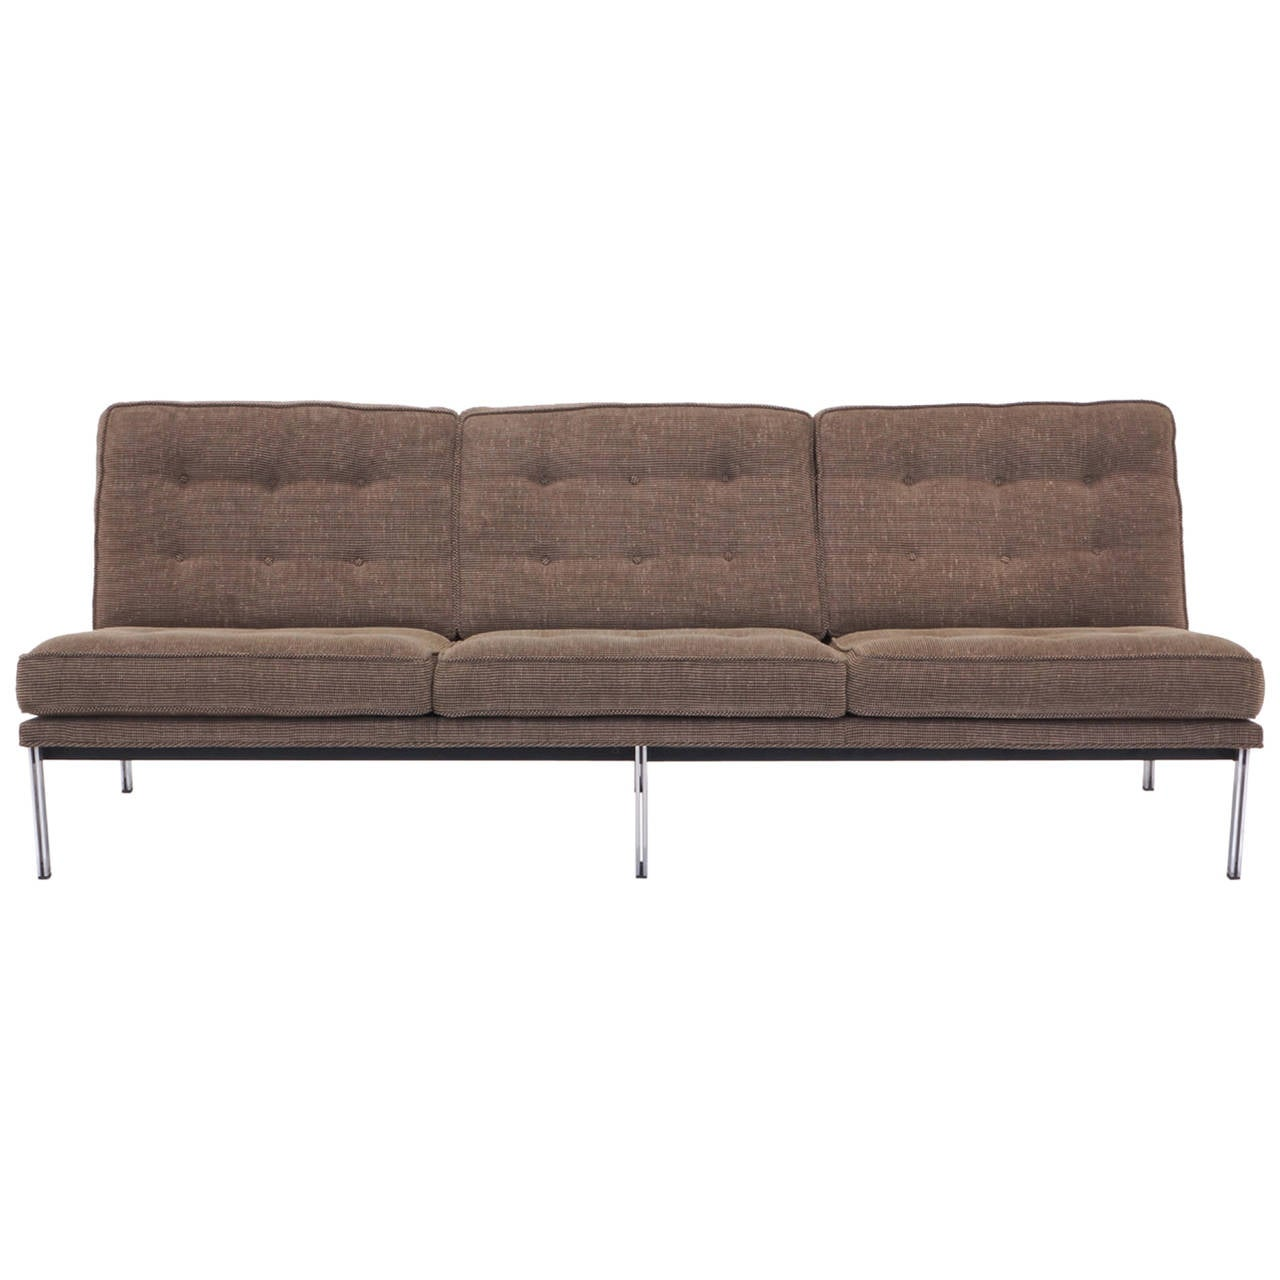 florence knoll parallel bar three seat armless sofa at stdibs - florence knoll parallel bar three seat armless sofa